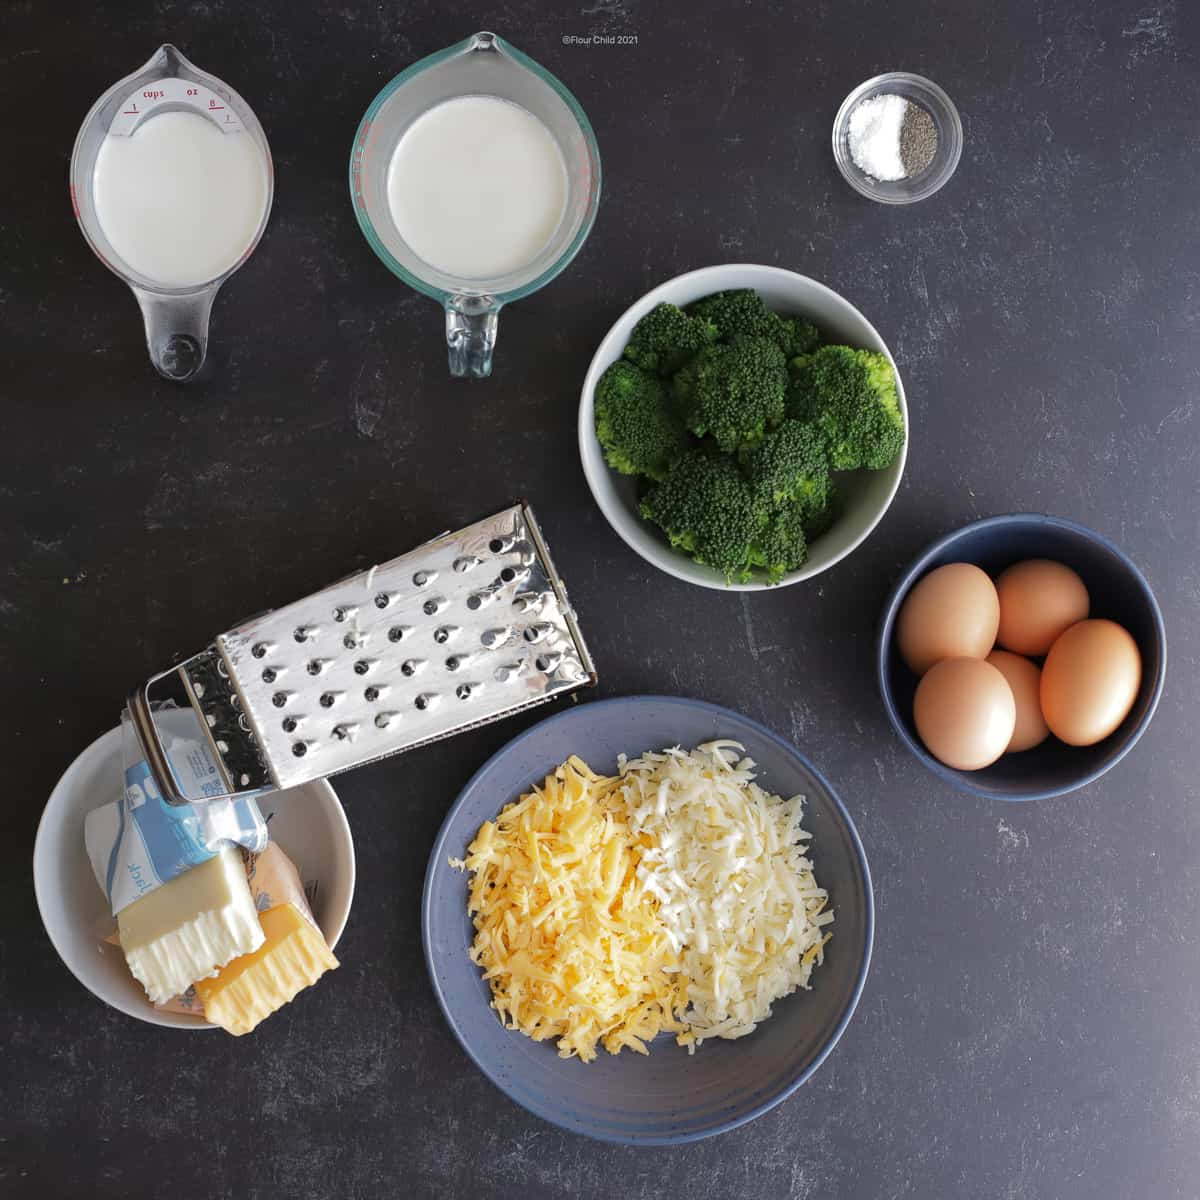 Ingredients for broccoli & cheddar jack cheese quiche